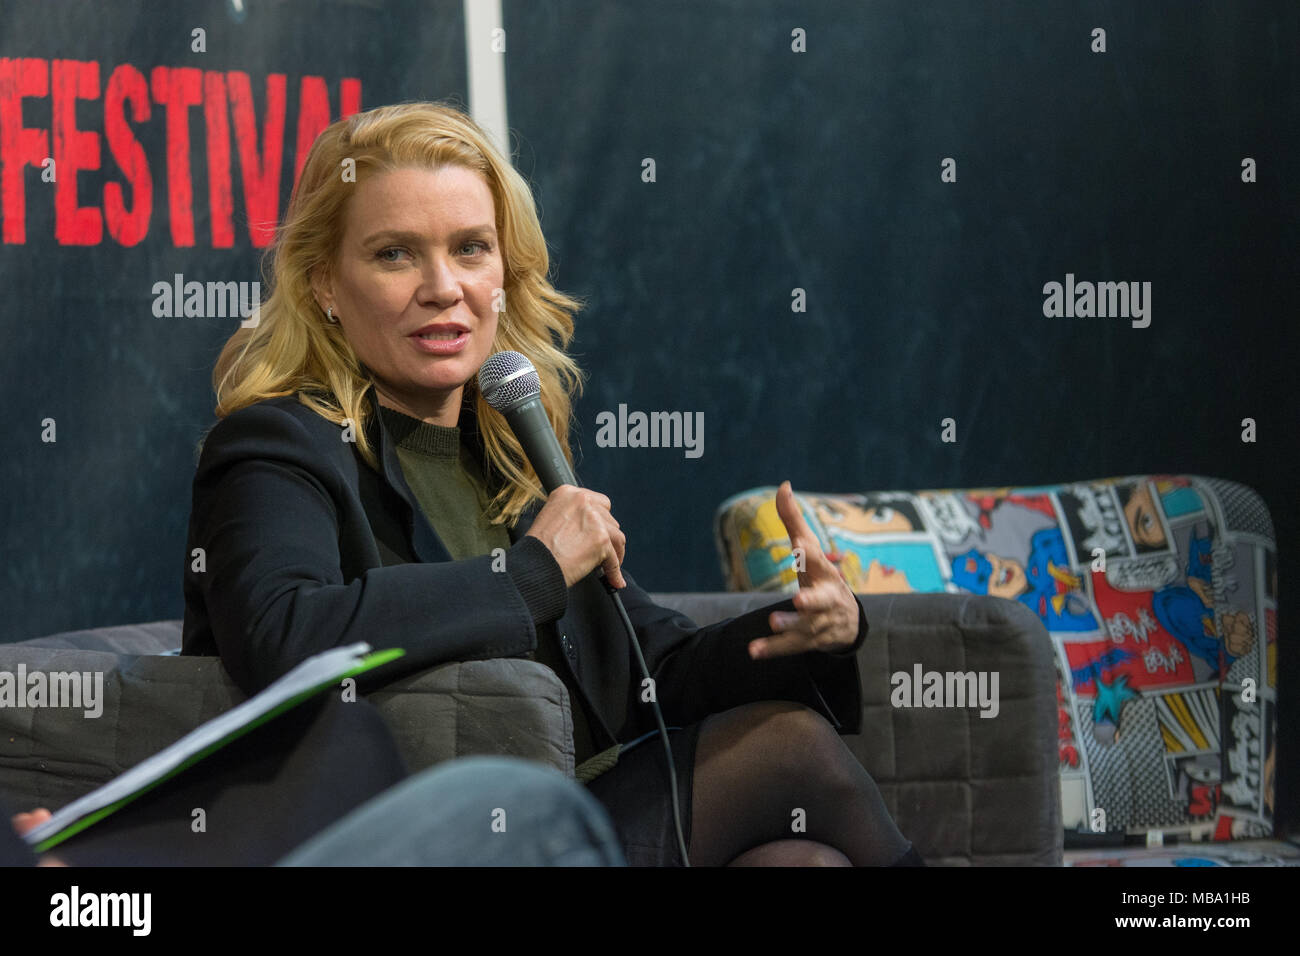 DORTMUND, GERMANY - APRIL 8: Actress Laurie Holden (The Walking Dead, The X-Files, Silent Hill) at Weekend of Hell, a two day (April 7-8 2018) horror-themed fan convention. Credit: Markus Wissmann/Alamy Live News - Stock Image